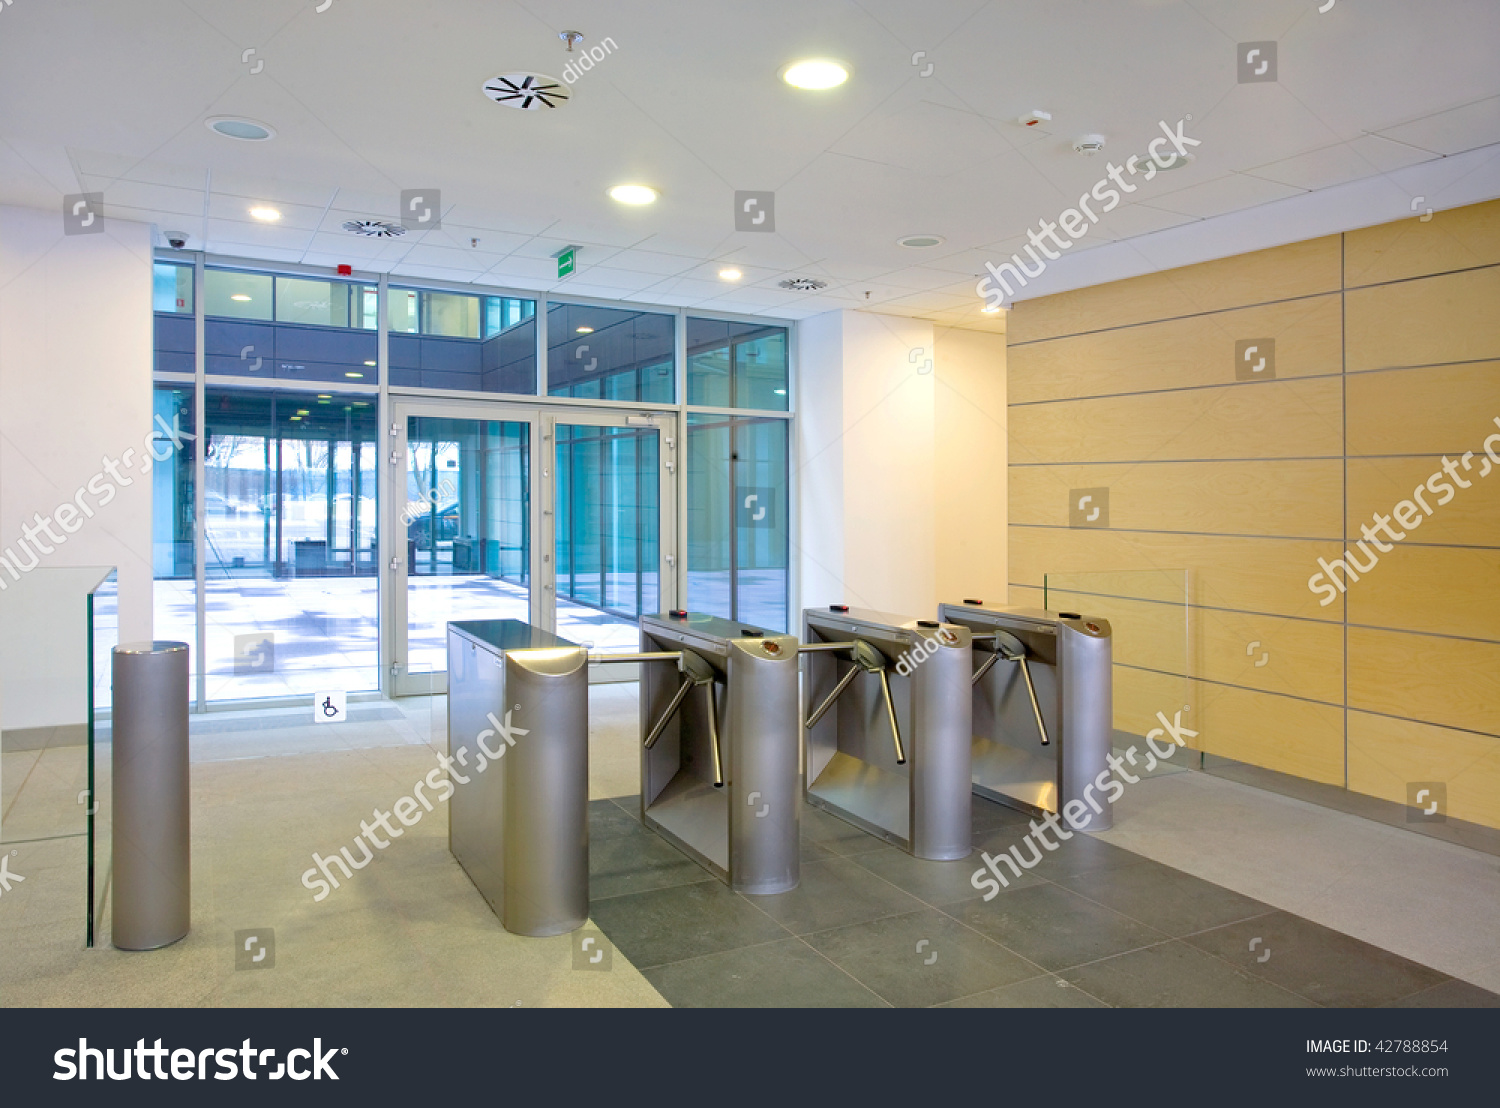 Lobby Entrance Turnstile Business Center Building Stock